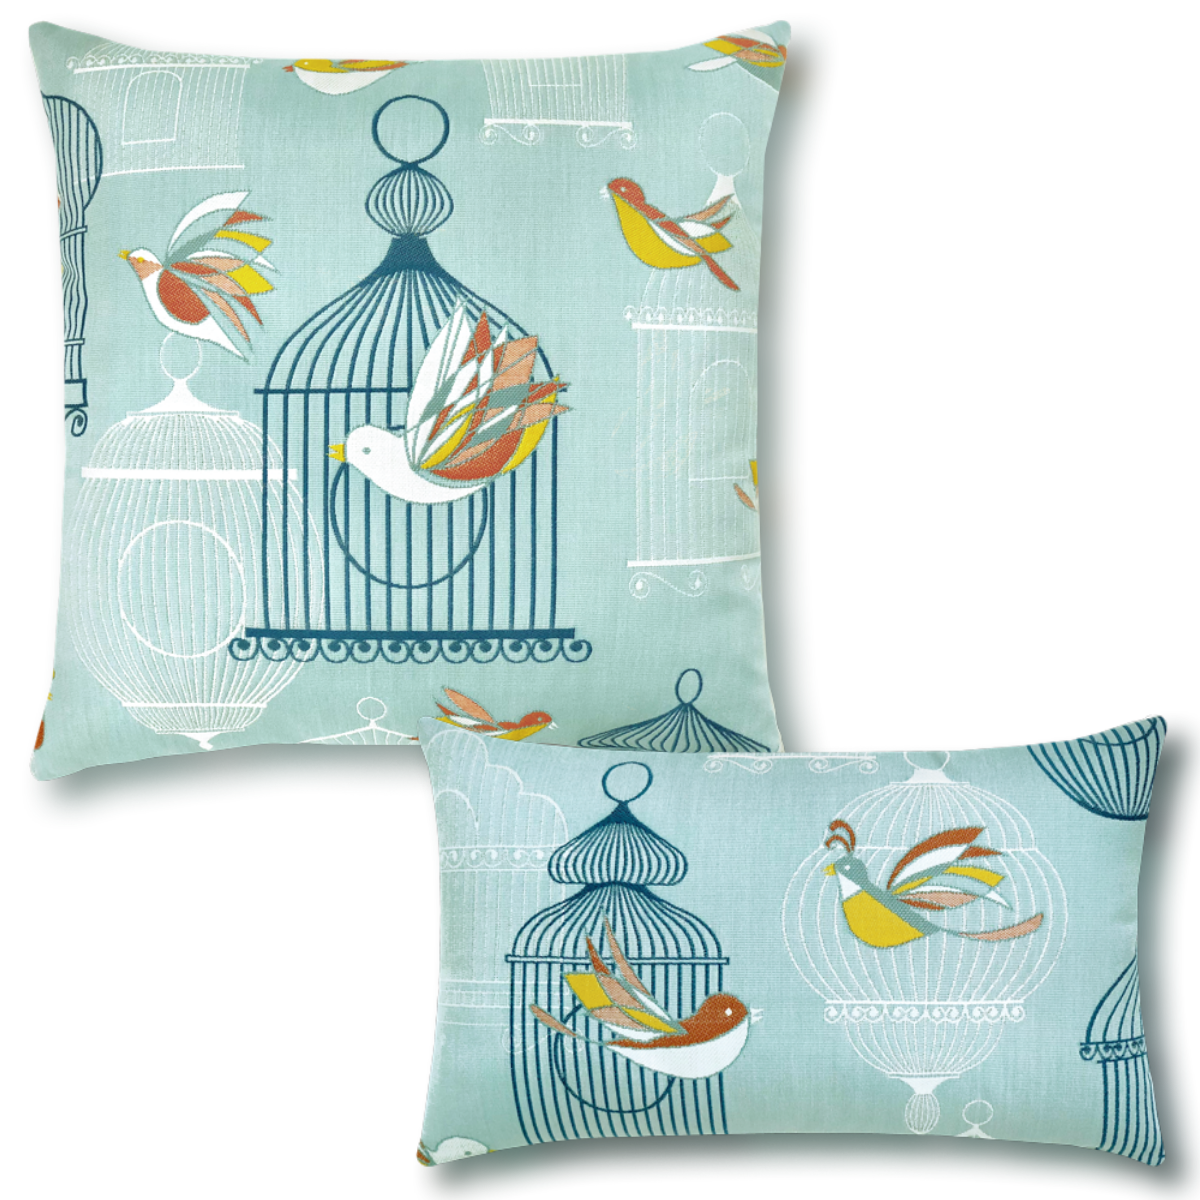 birds-and-cages-pillow-set